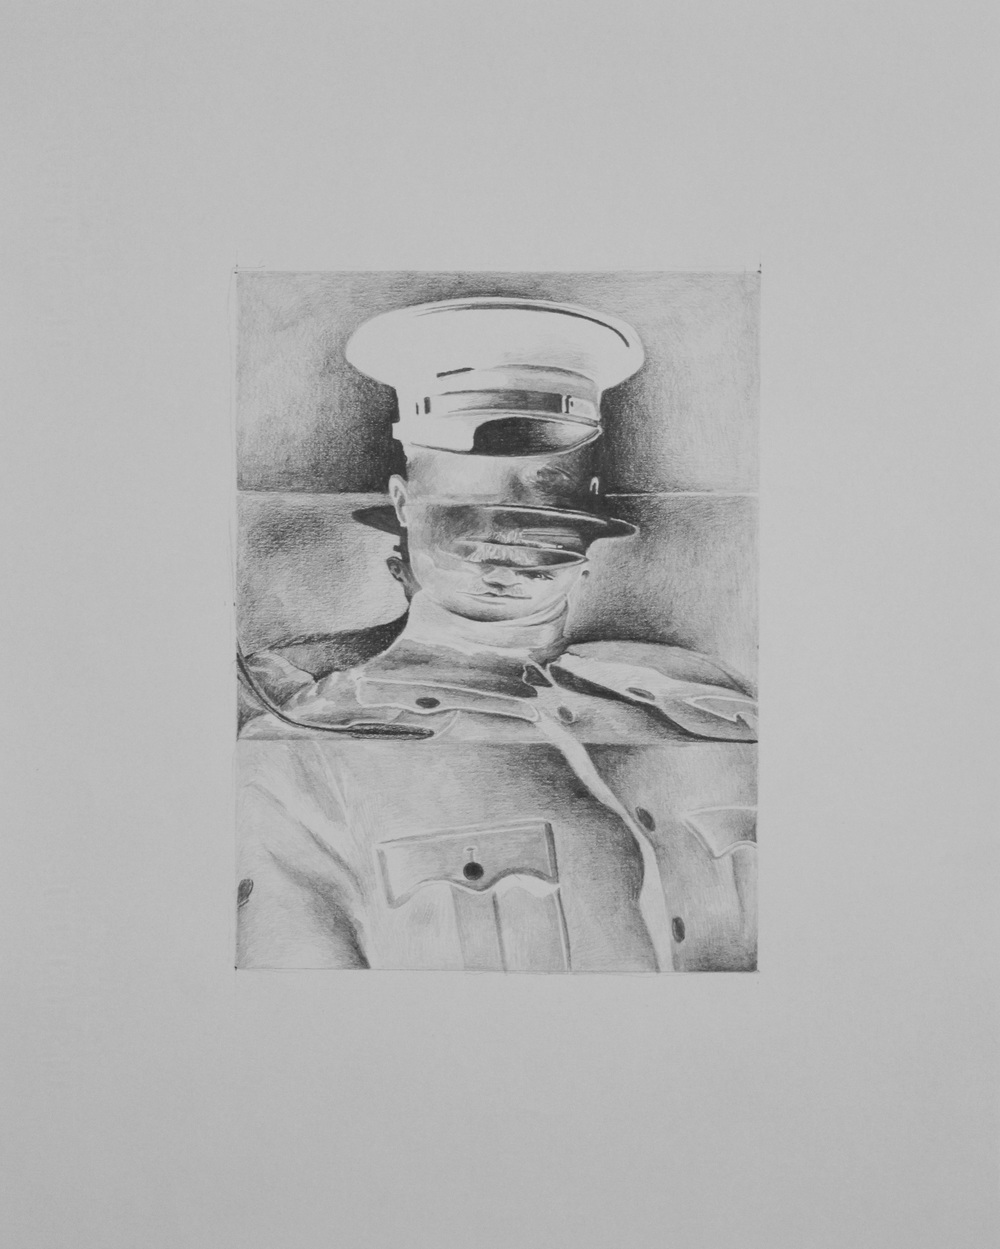 P-01 , pencil on archival paper, 2011